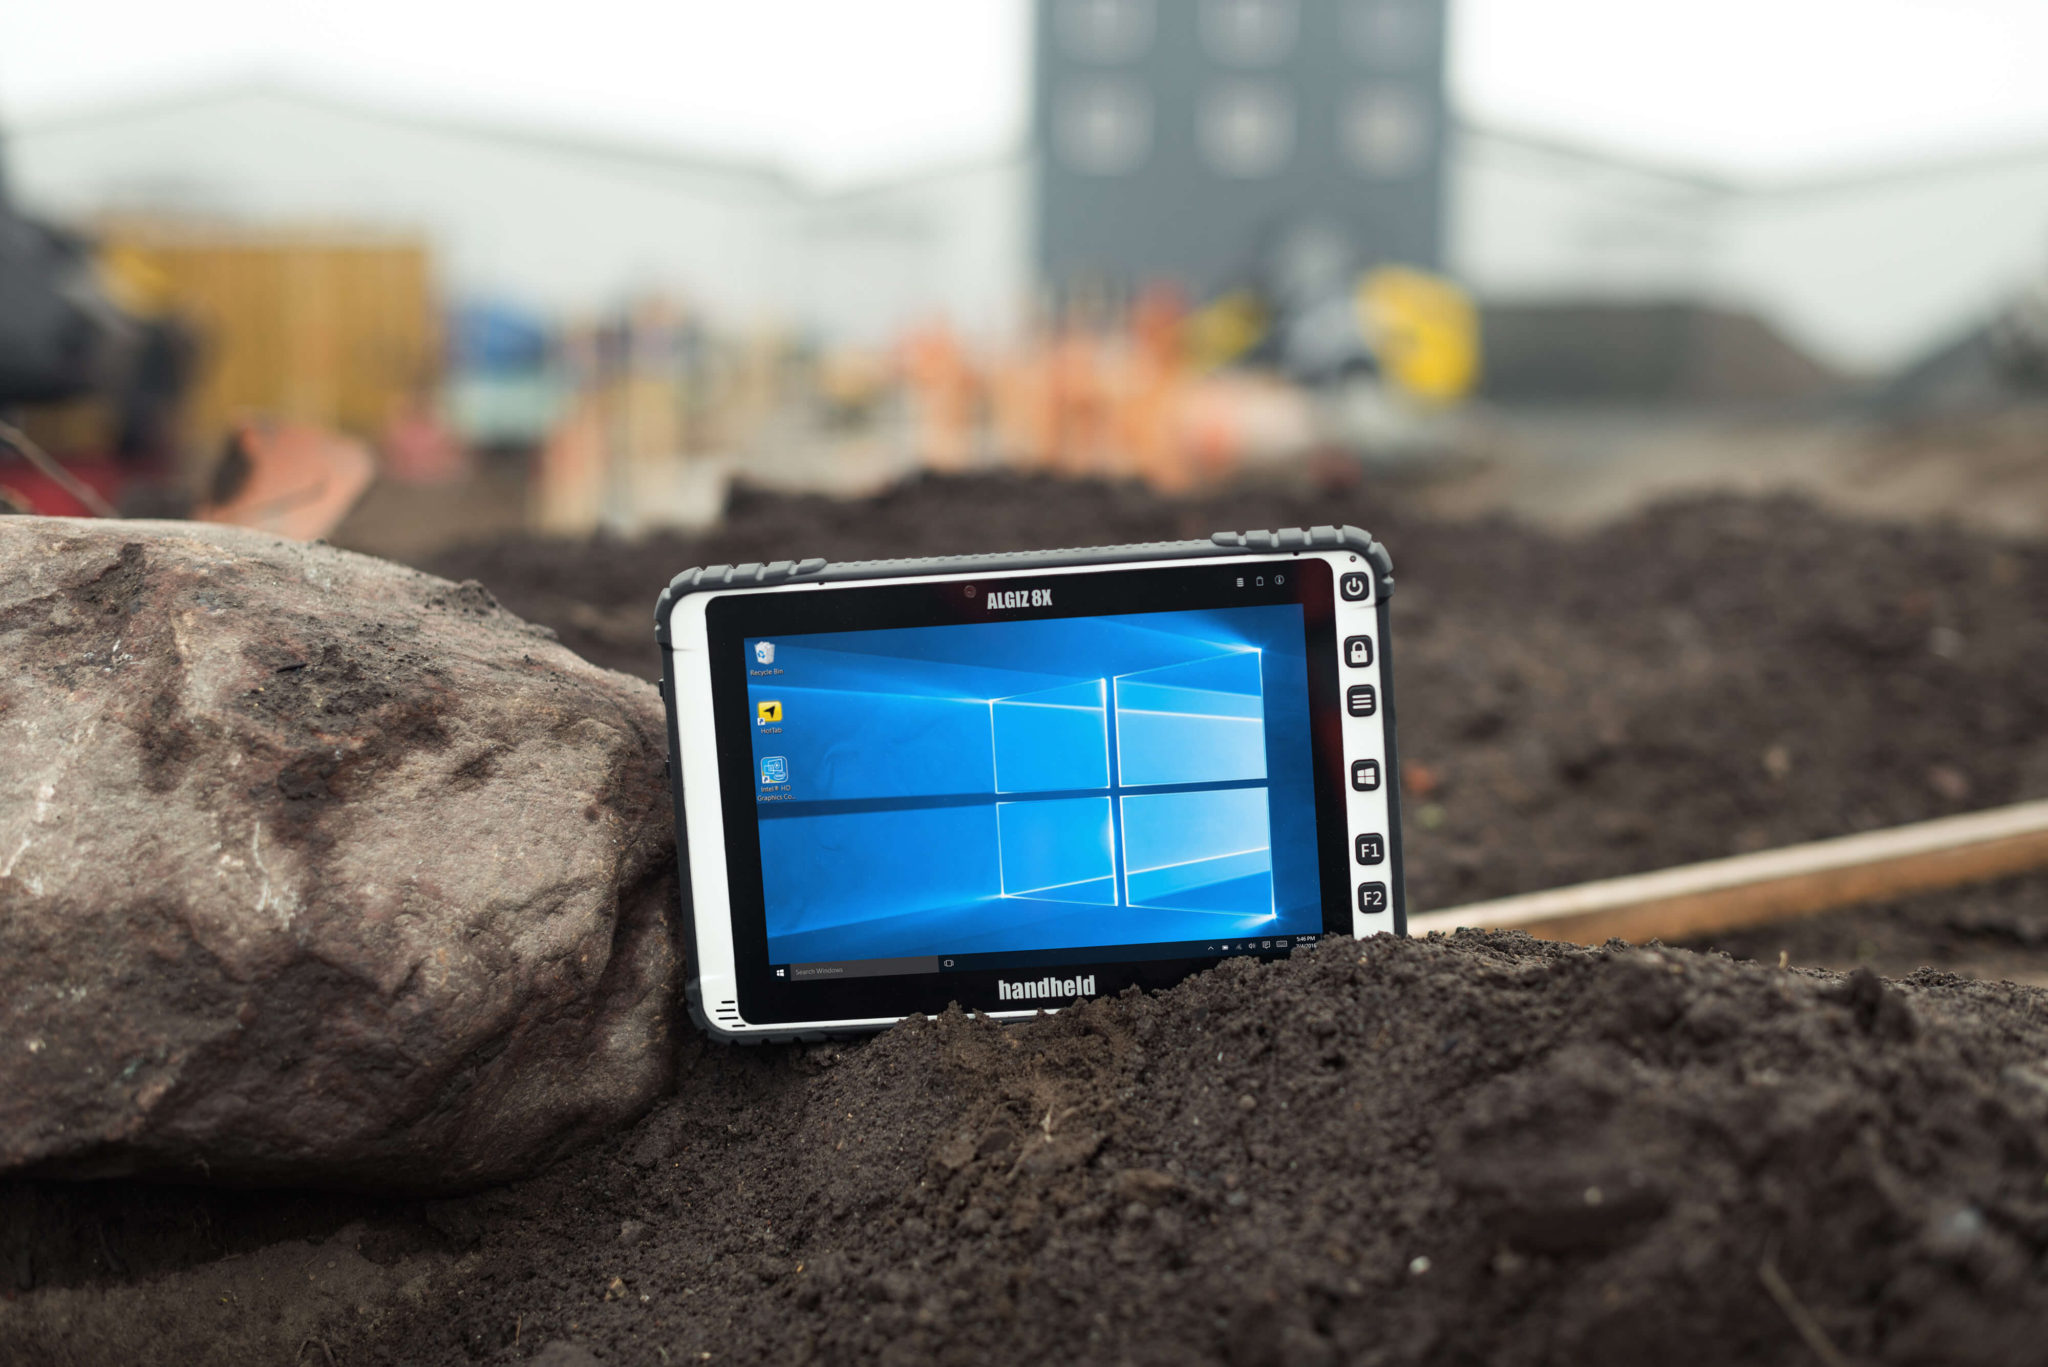 Handheld-Algiz-8X-rugged-IP65-tablet(1)